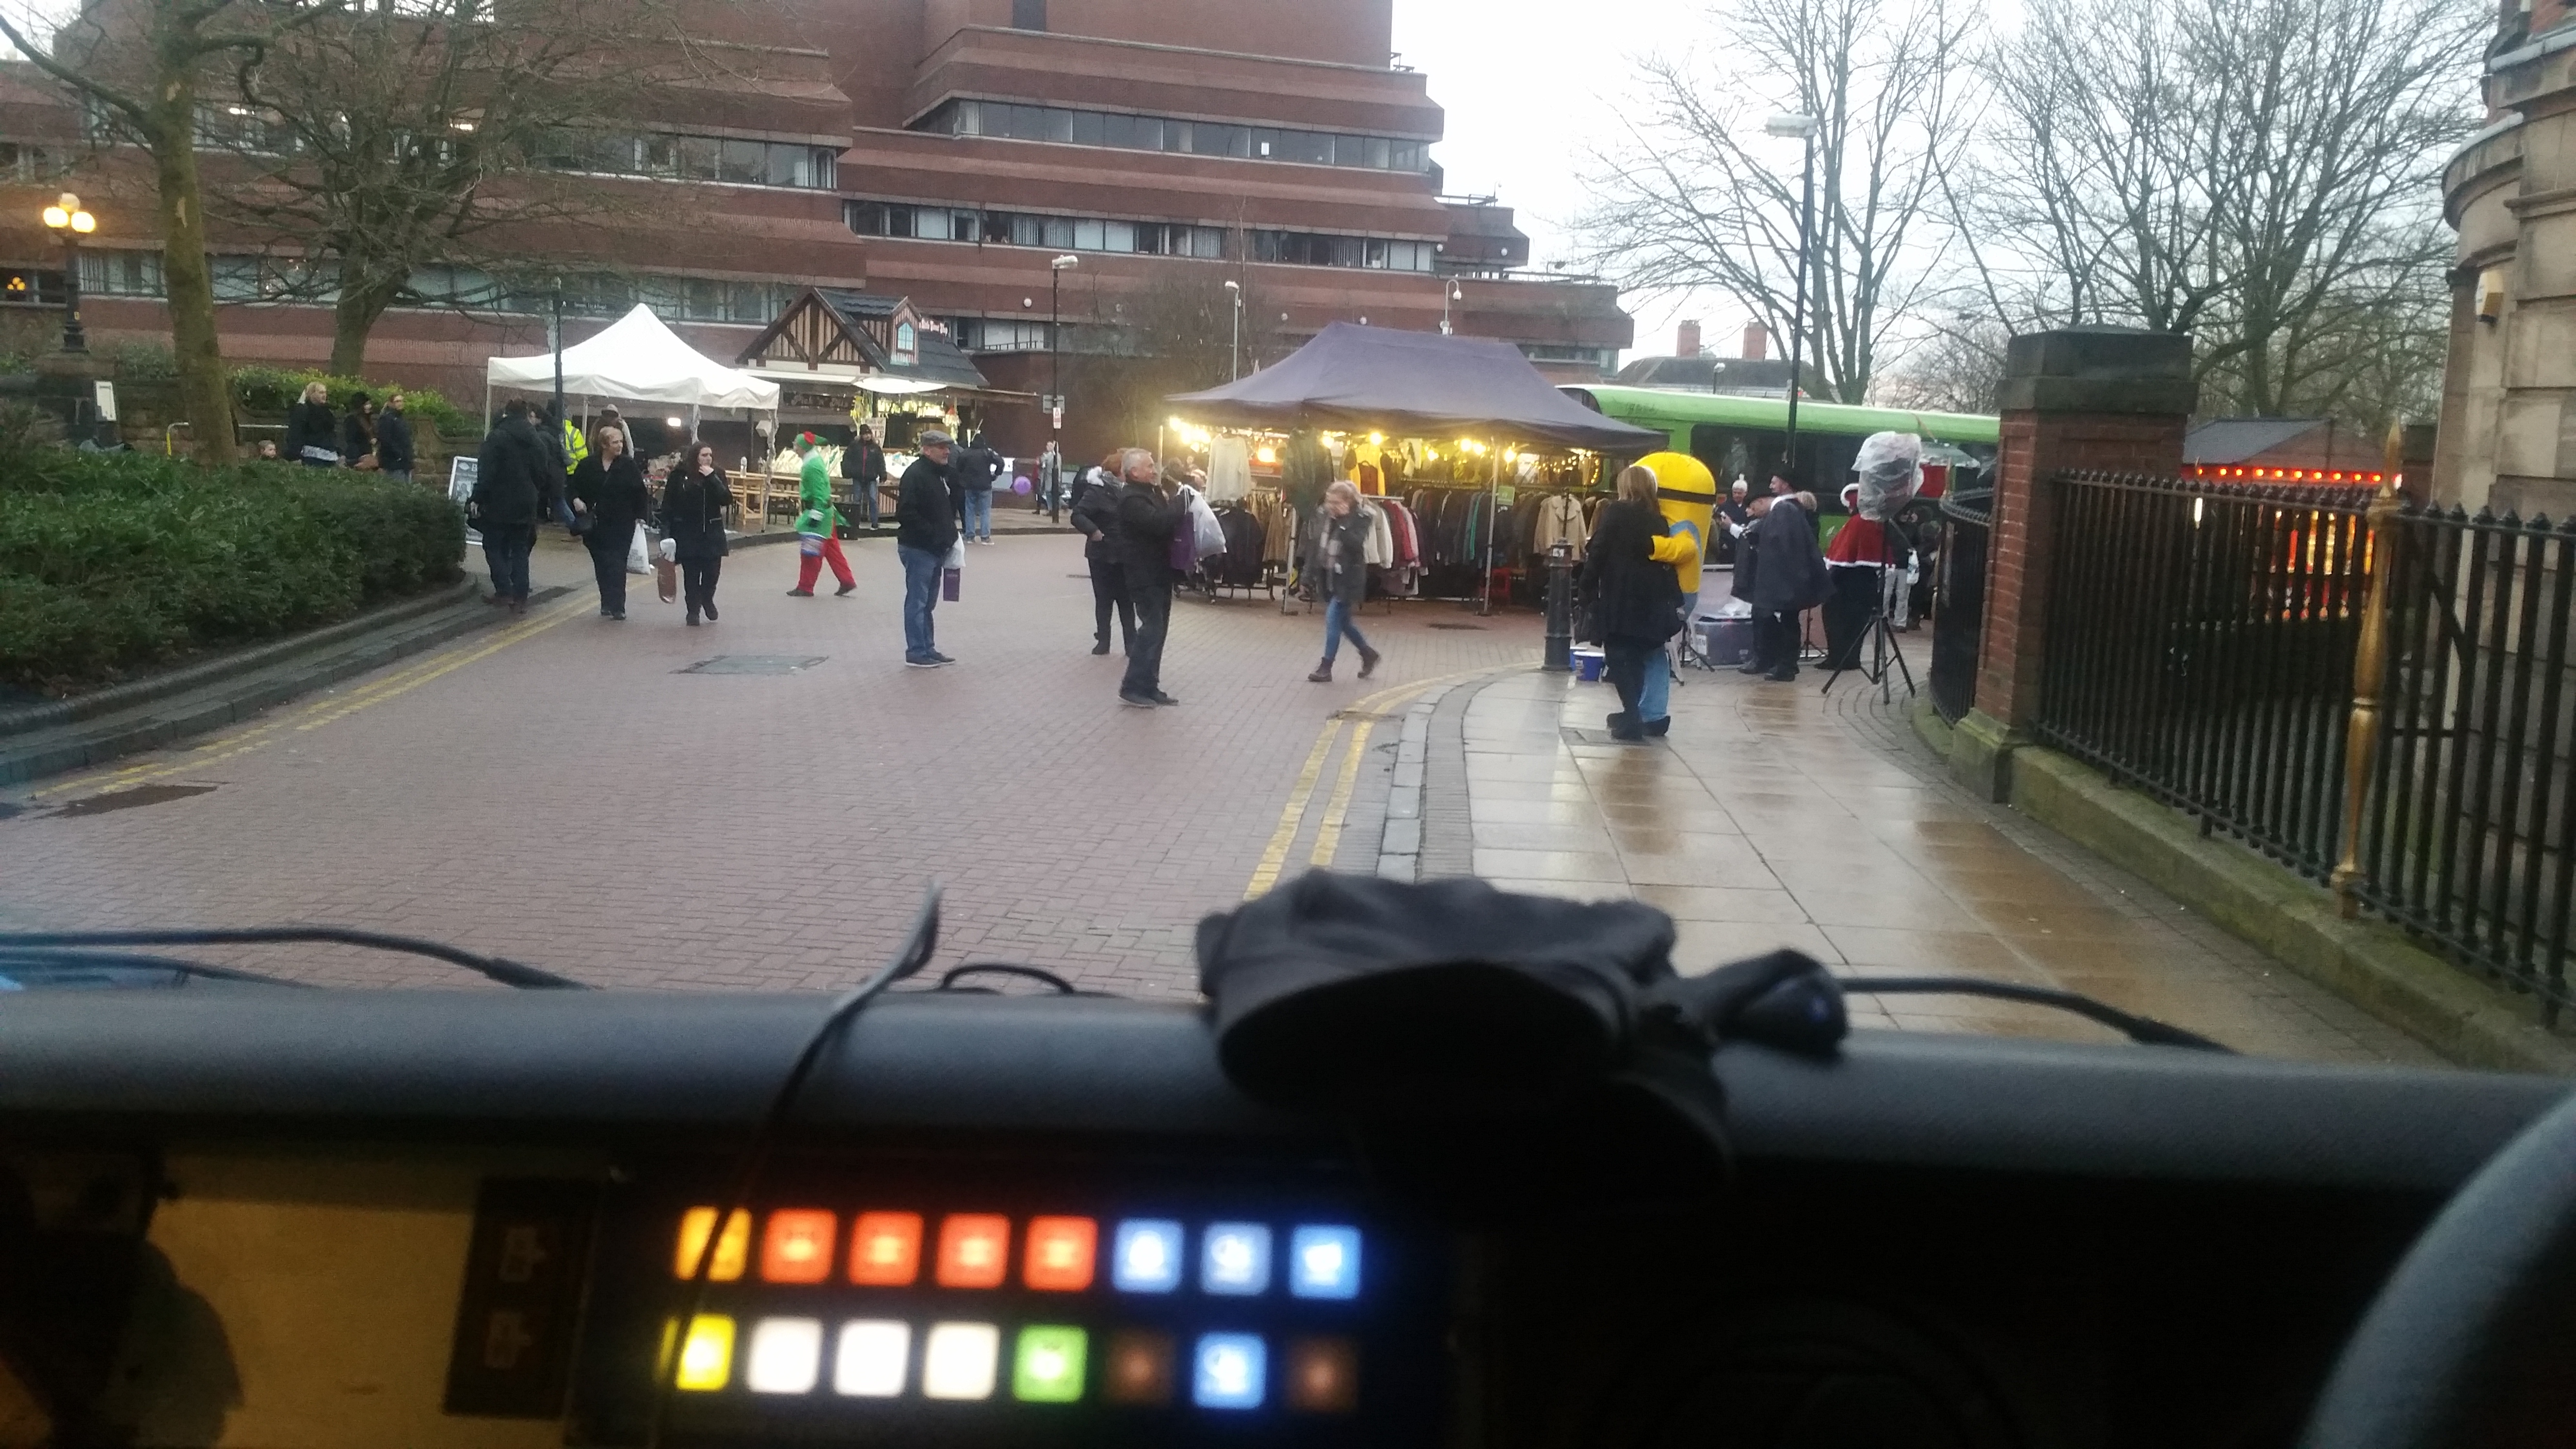 A couple of our team at Wolverhampton Christmas Market